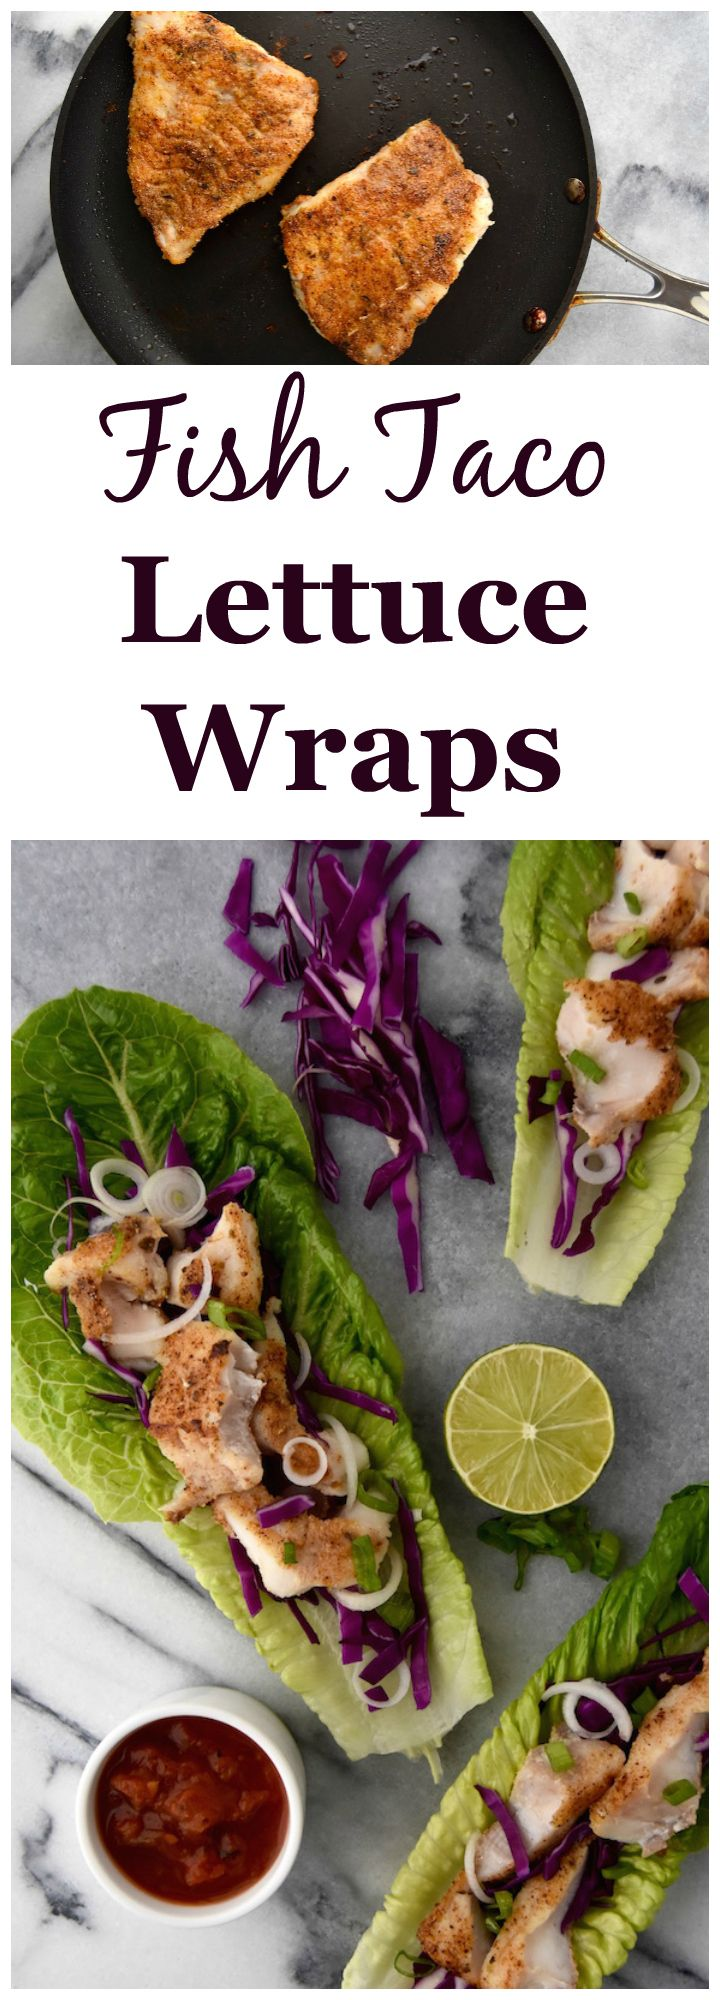 Rockfish Taco Lettuce Wraps - a simple 25 minute weeknight dinner idea. | uprootkitchen.com